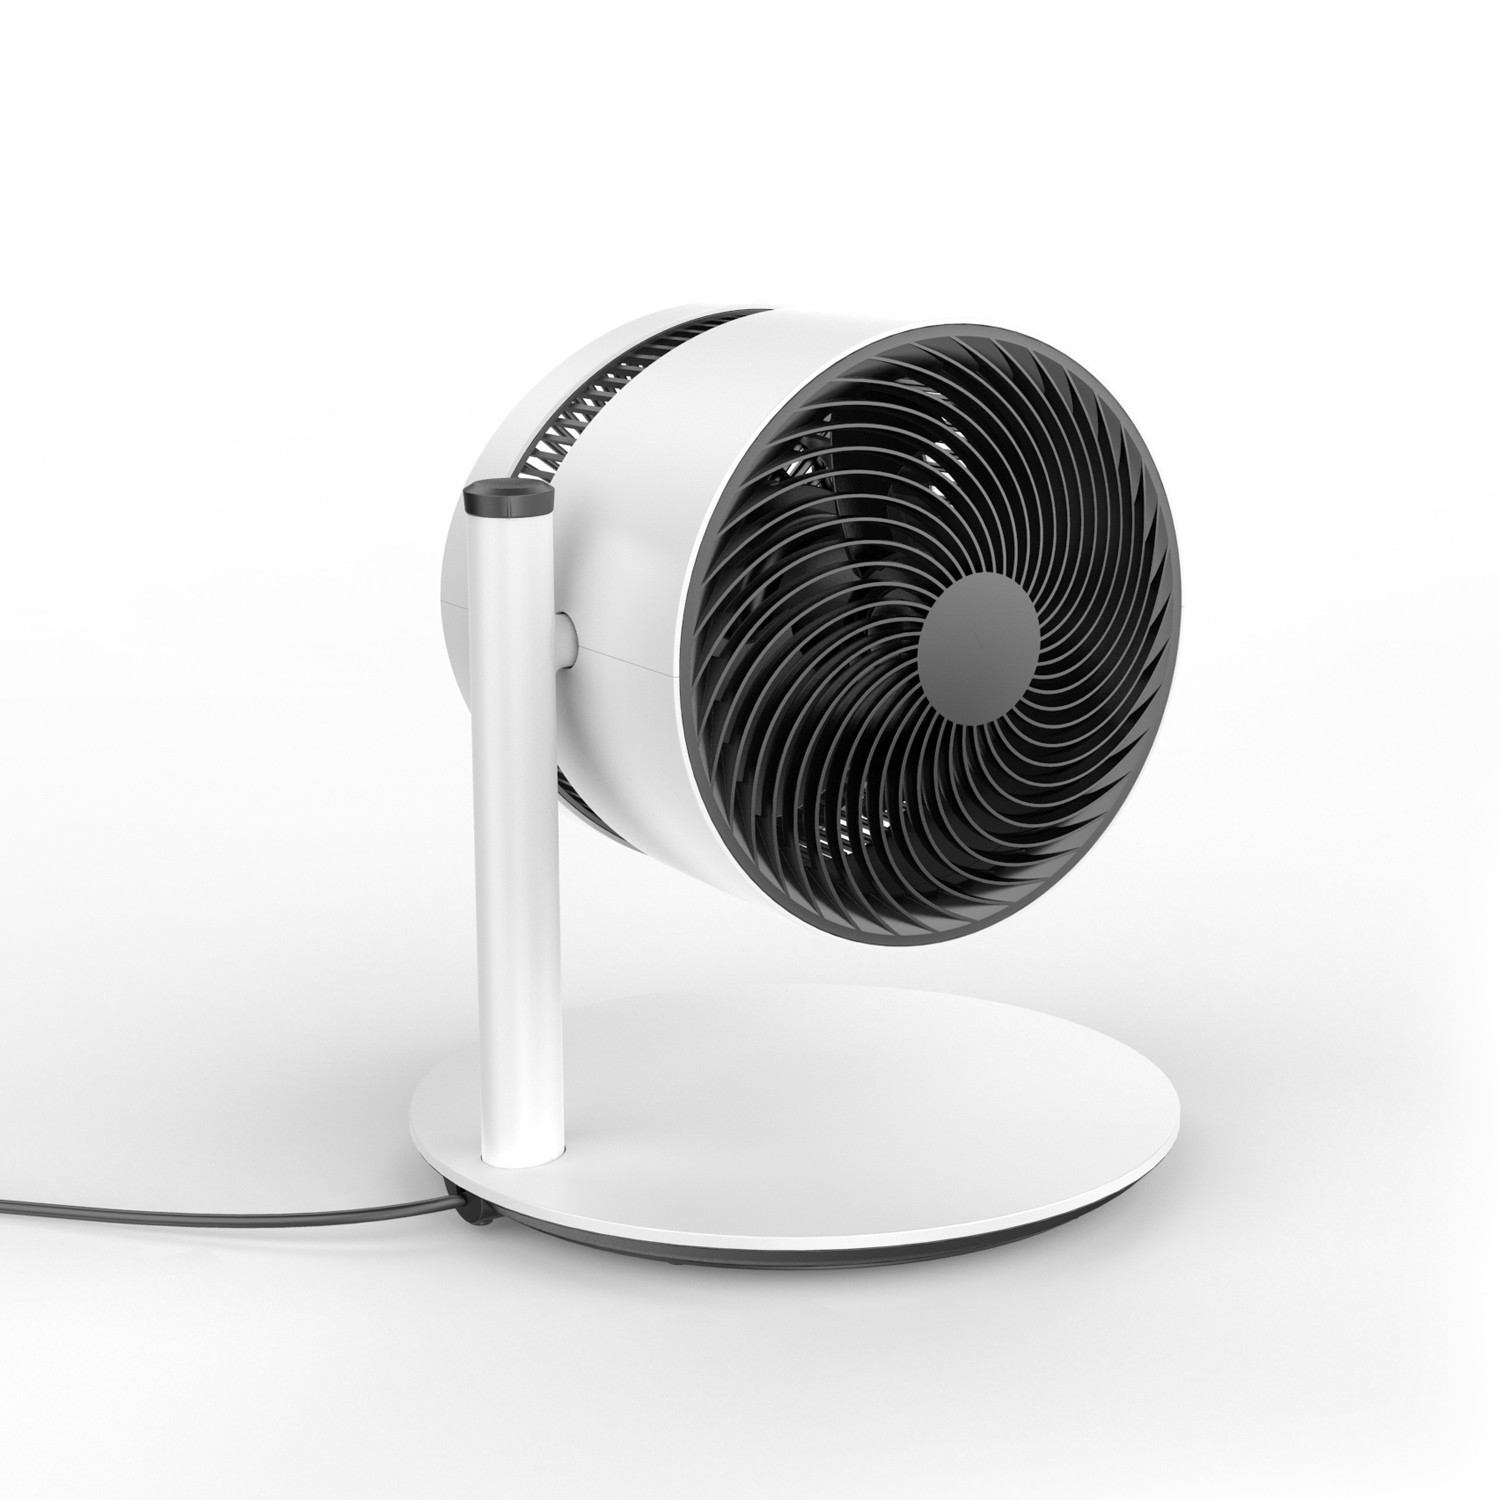 Industrial design render details of the new Boneco domestic fan range